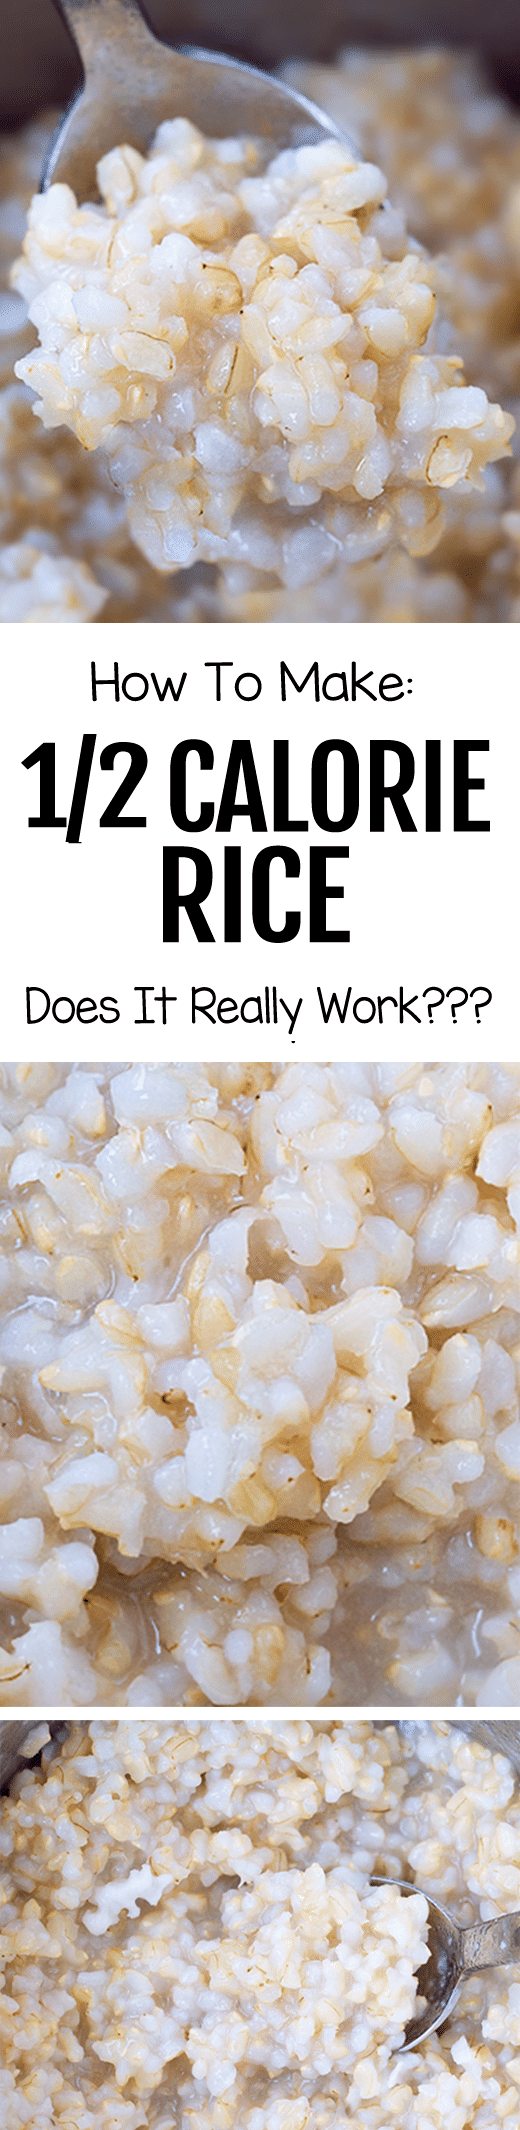 How To Make Half Calorie Rice The Easy Recipe